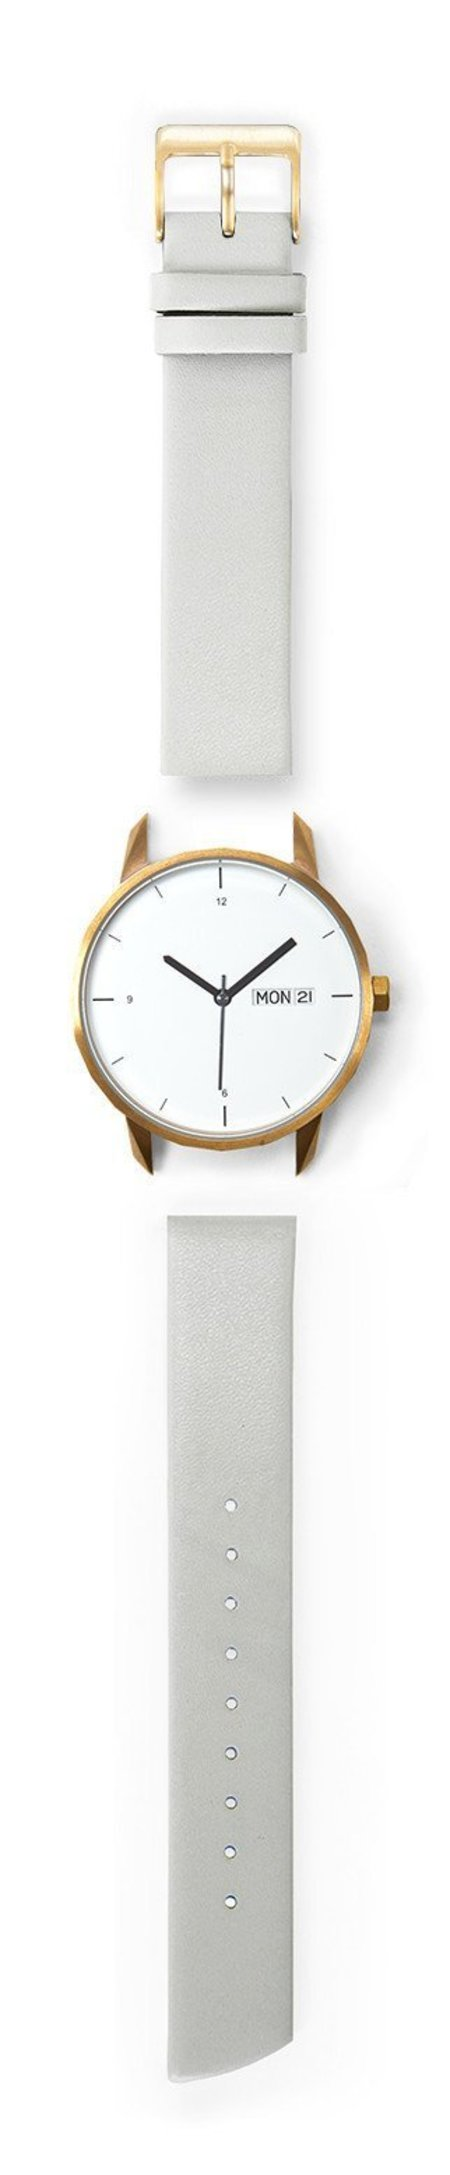 Unisex Tinker Watches 38mm Gold Watch Grey Quick-Release Strap